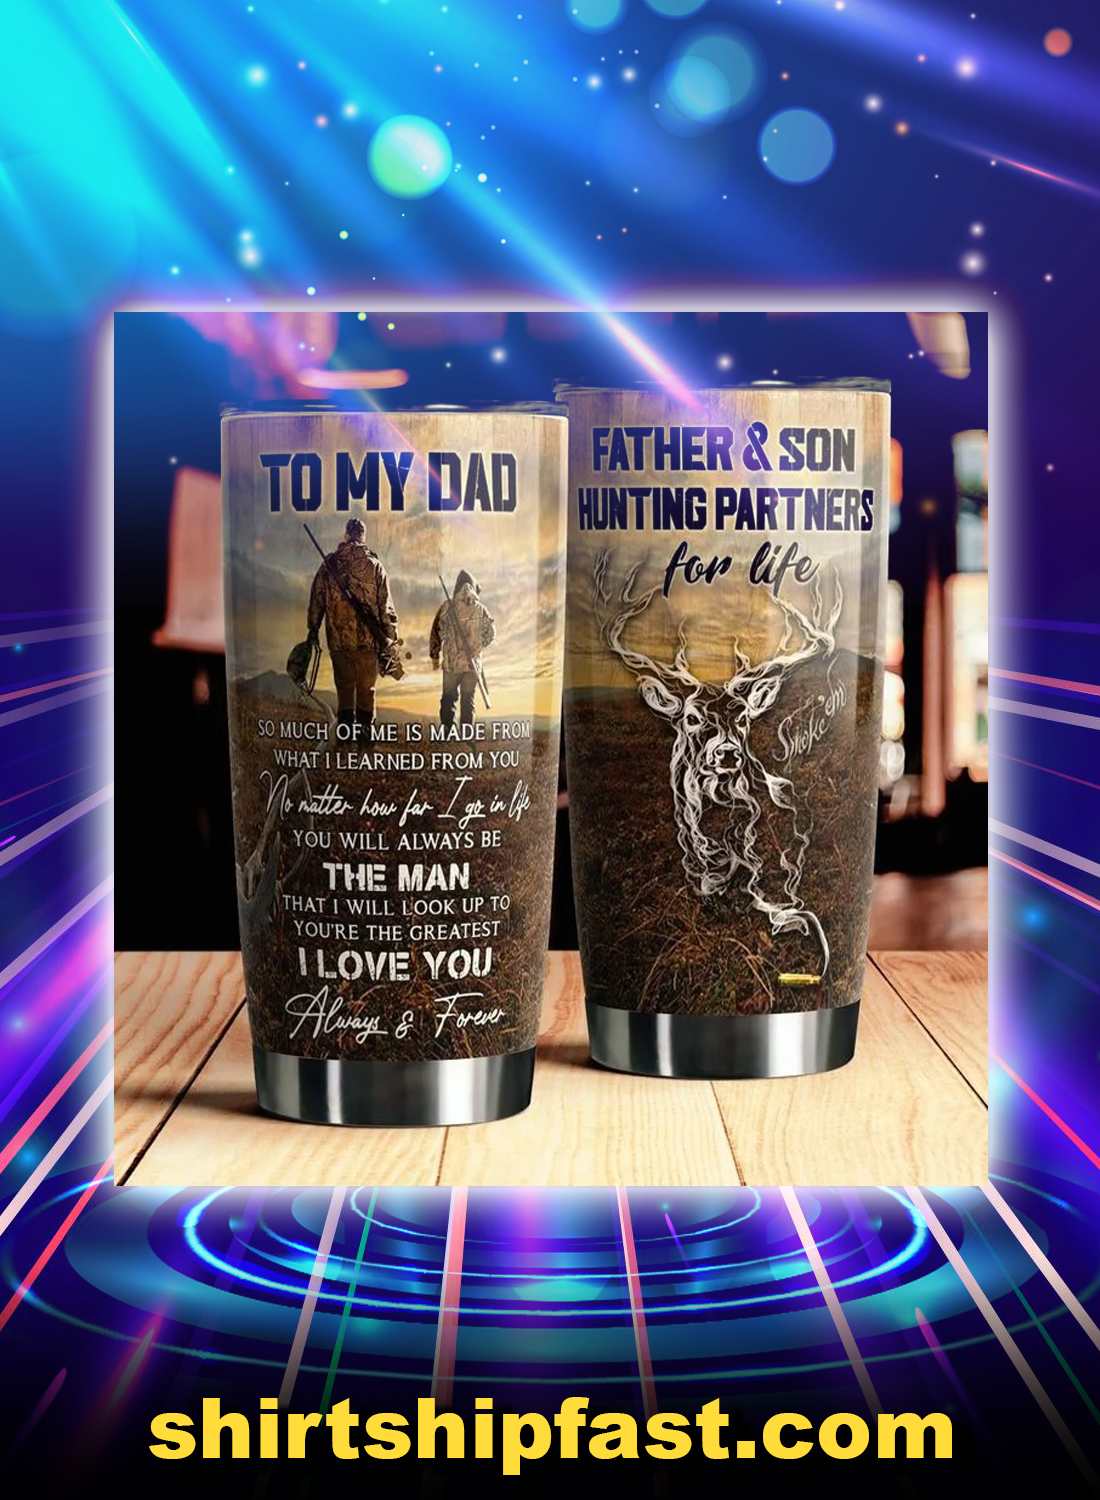 Deer hunting father and son hunting parners for life tumbler